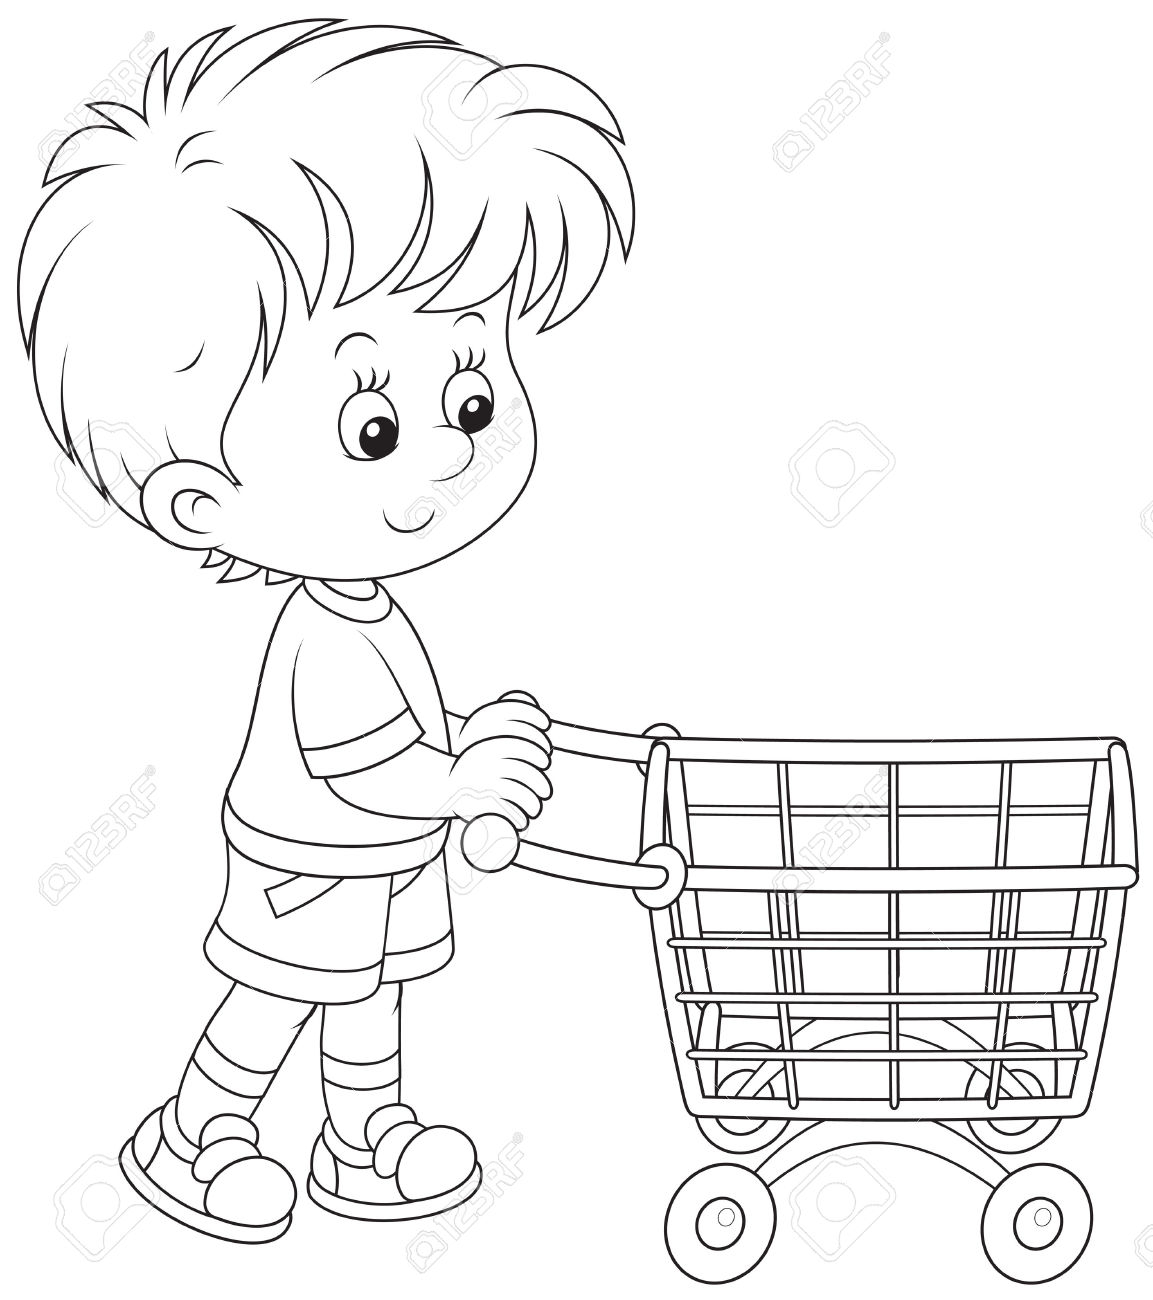 Shopping Cart Coloring Page Webmajstor Download Of Pretty Cute Anime Girls Coloring Pages for Kids Womanmate Collection